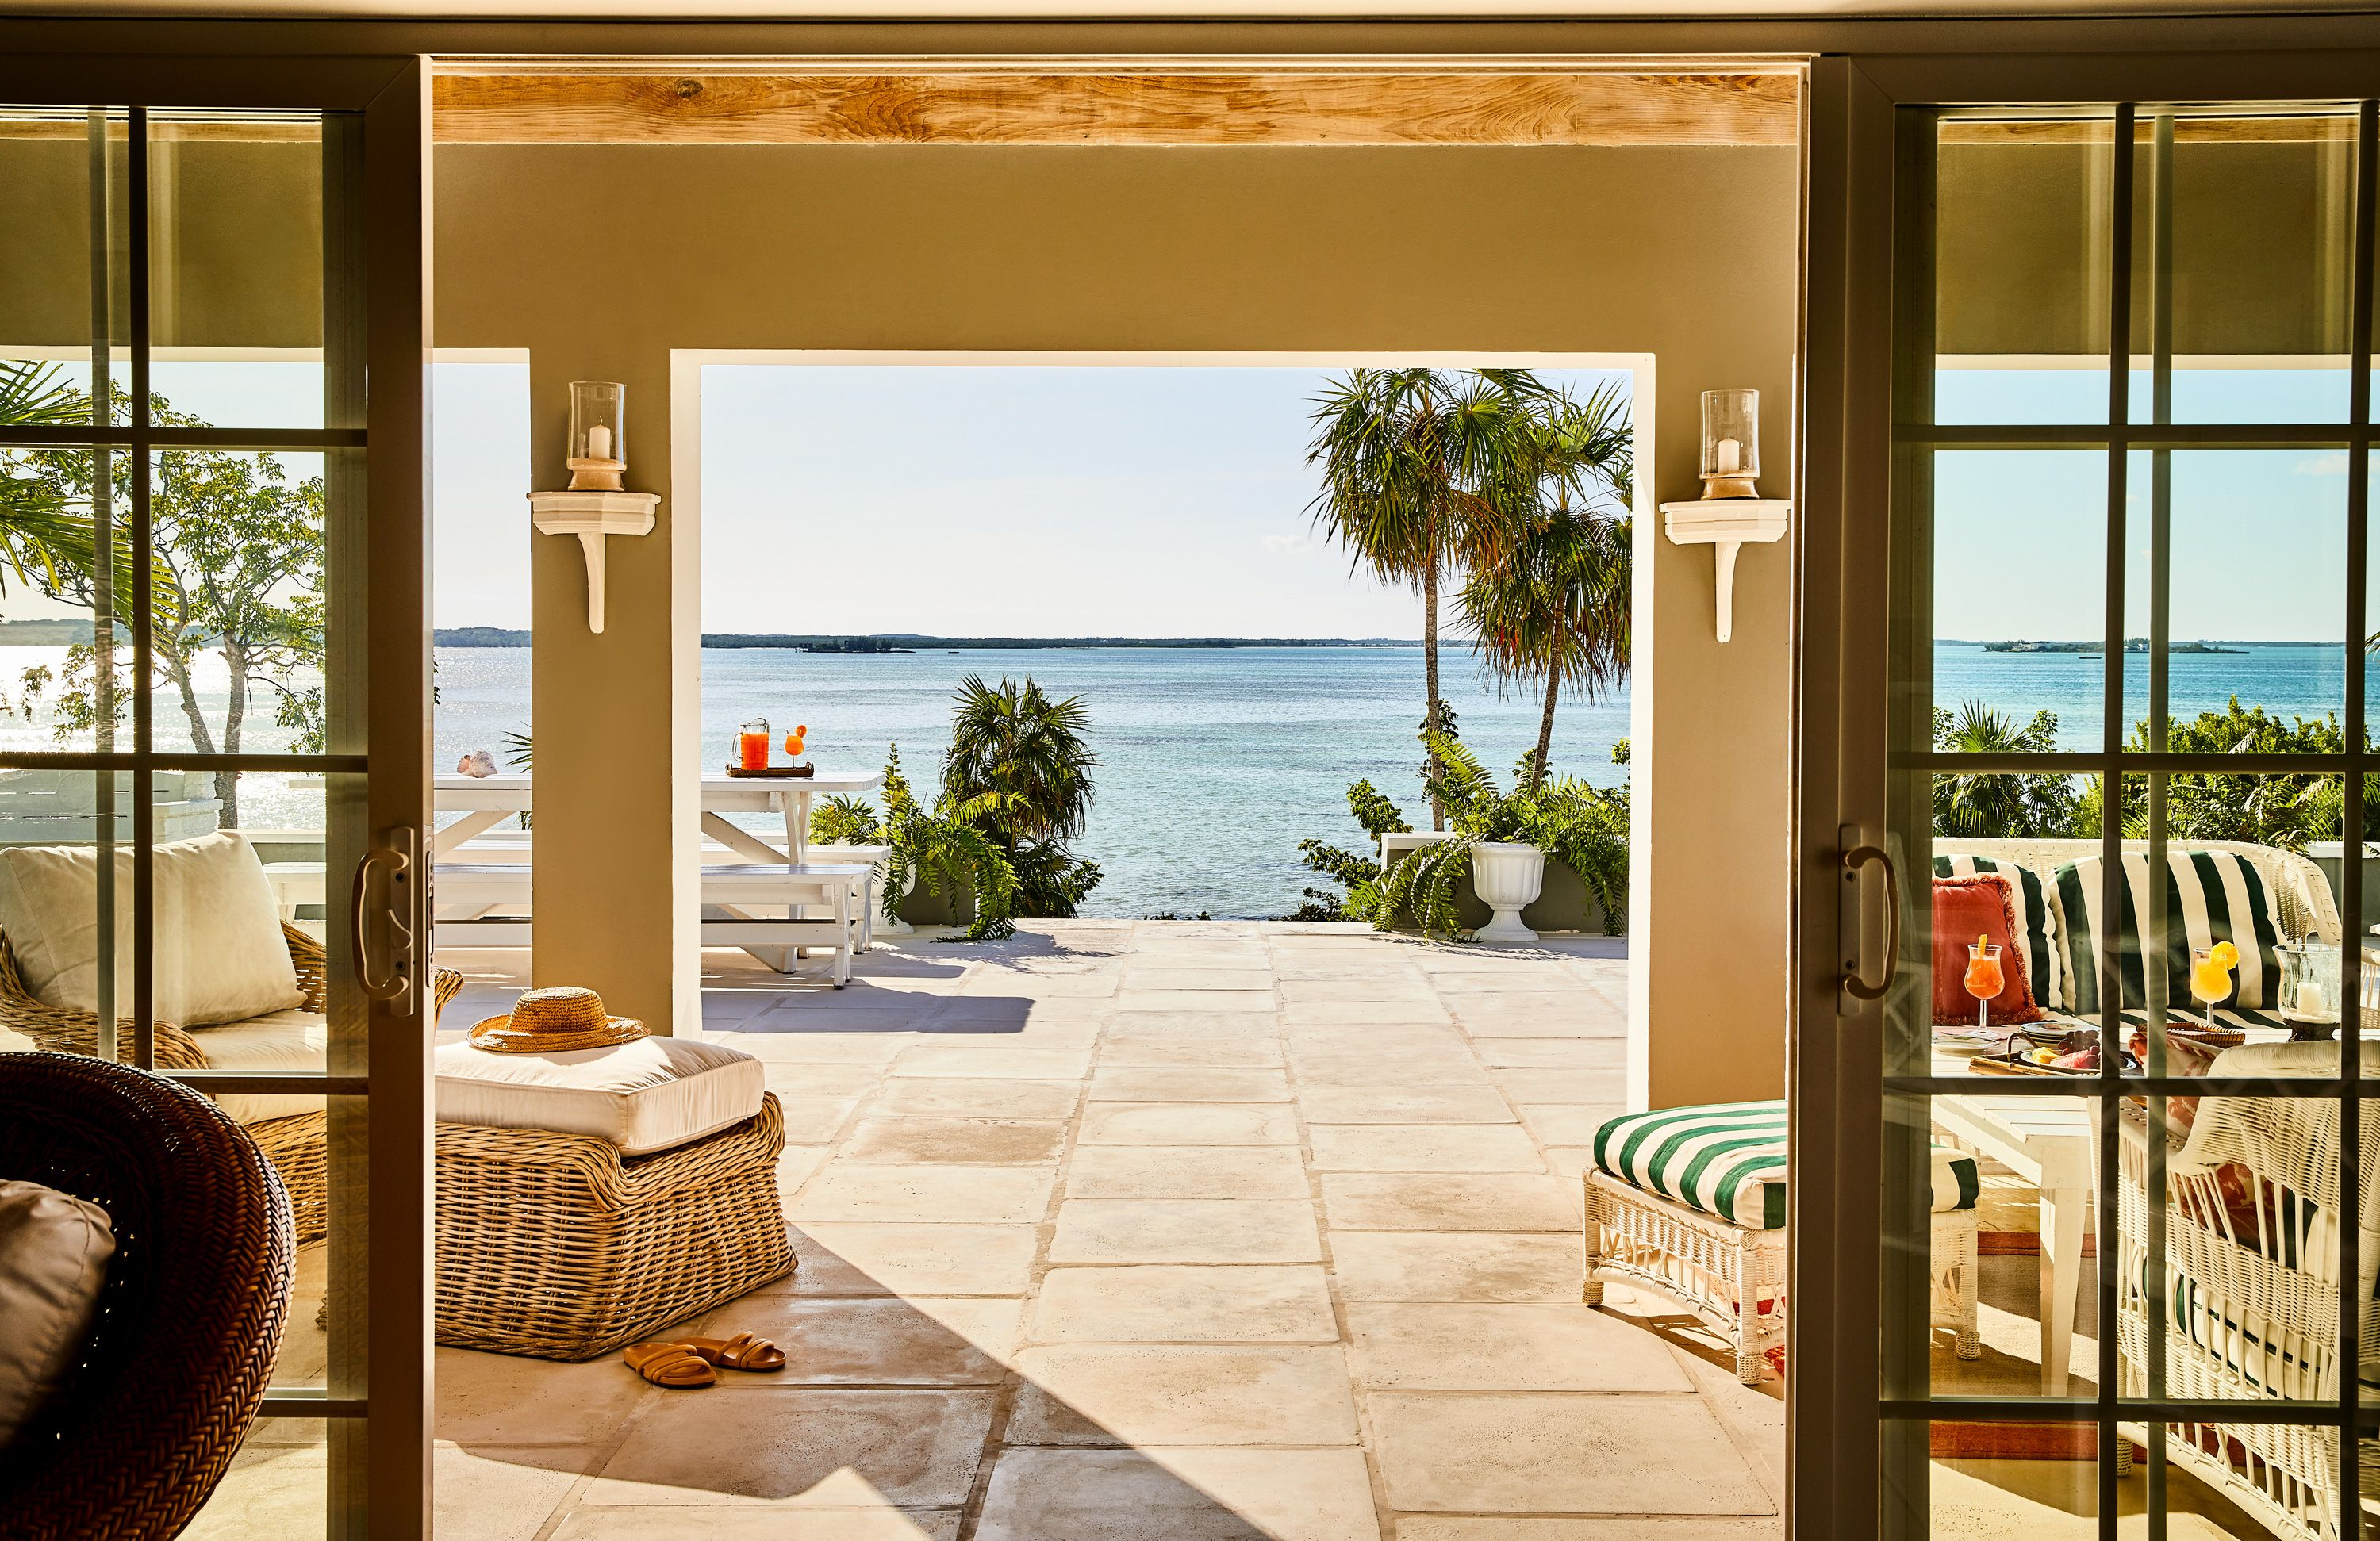 5 Ways To Transform Any Beach House Into A Serene Tropical Oasis